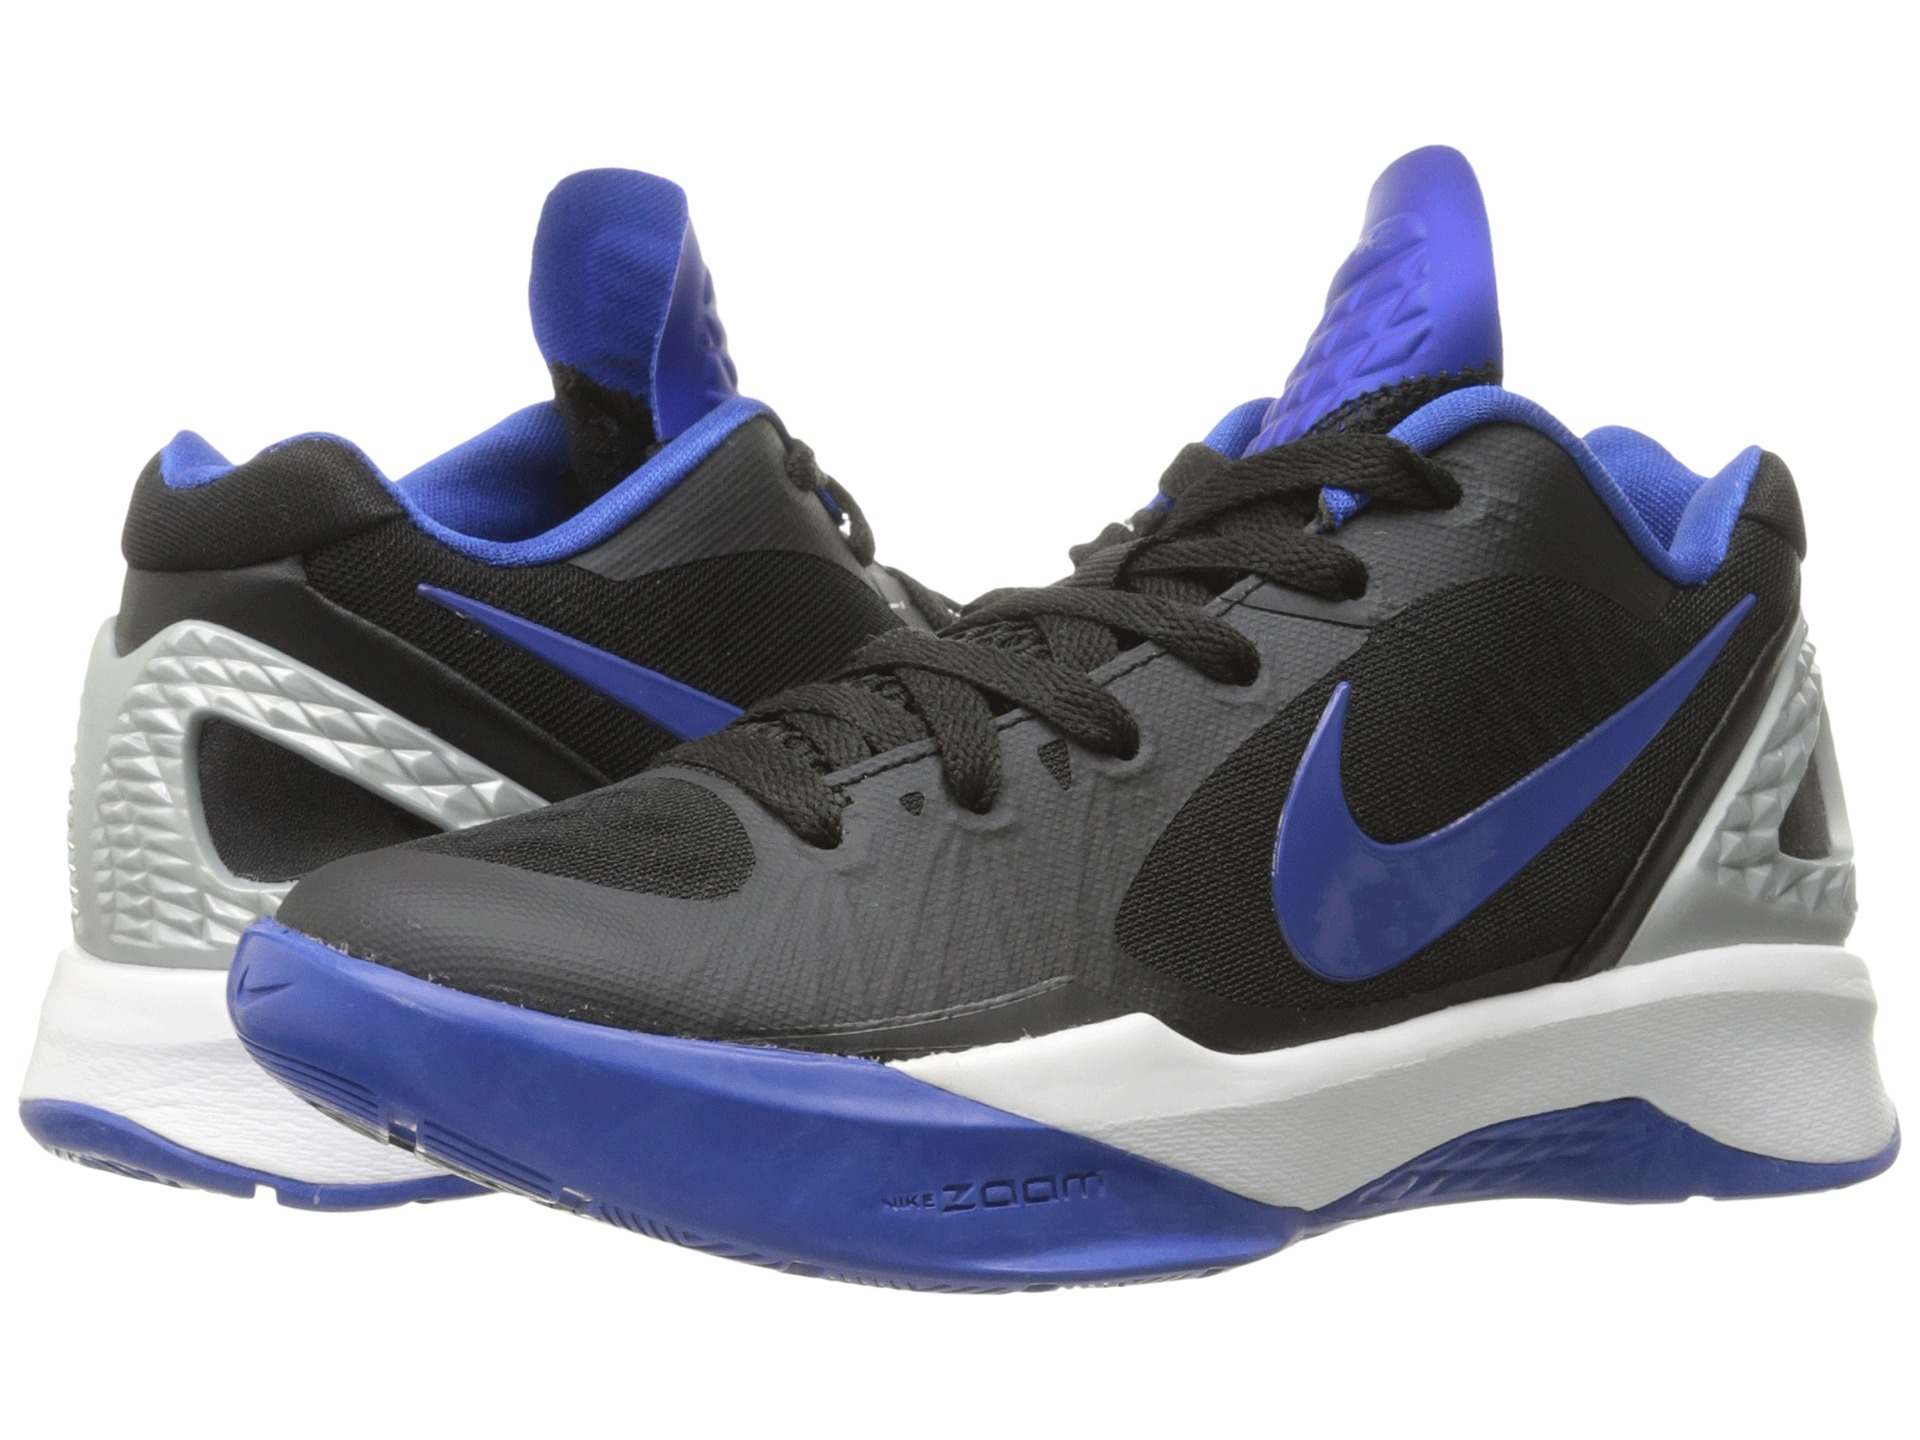 Best Volleyball Shoes Brand